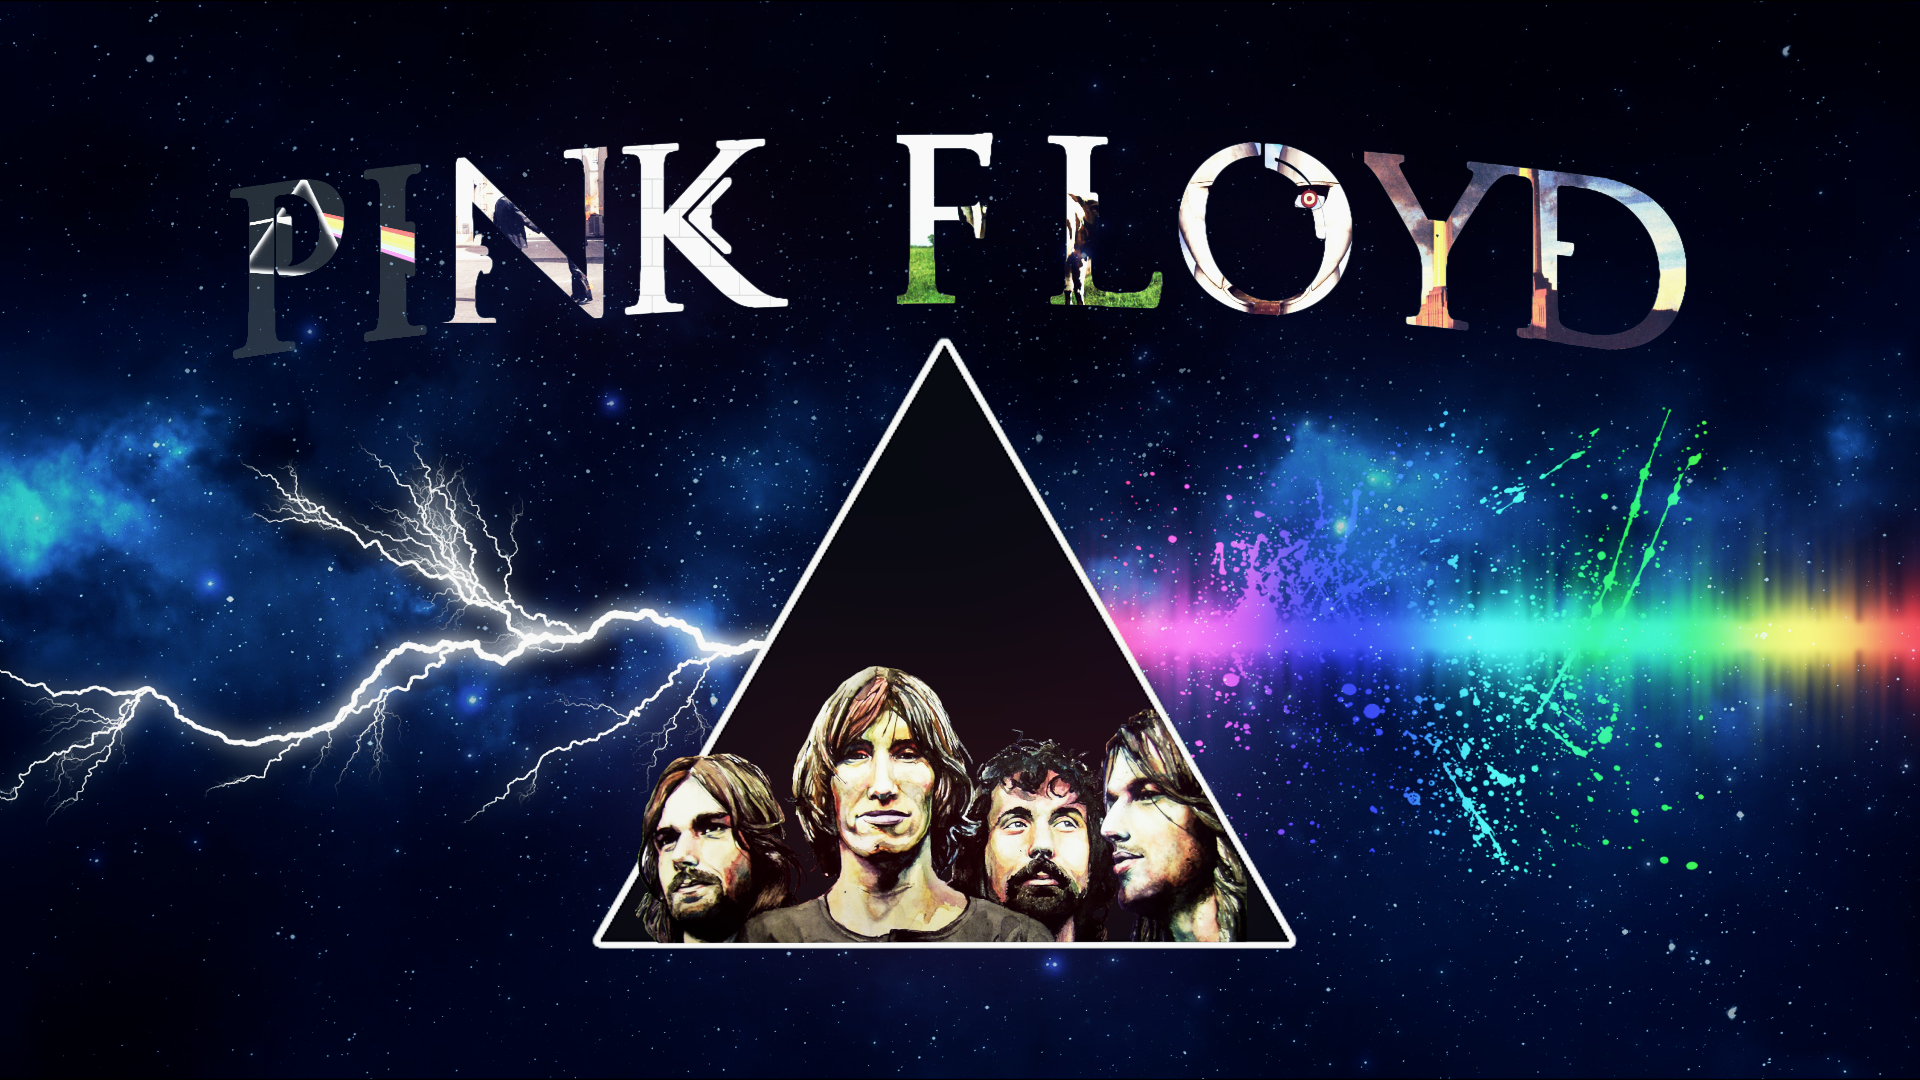 Pink floyd wallpapers images photos pictures backgrounds - Pink floyd images high resolution ...